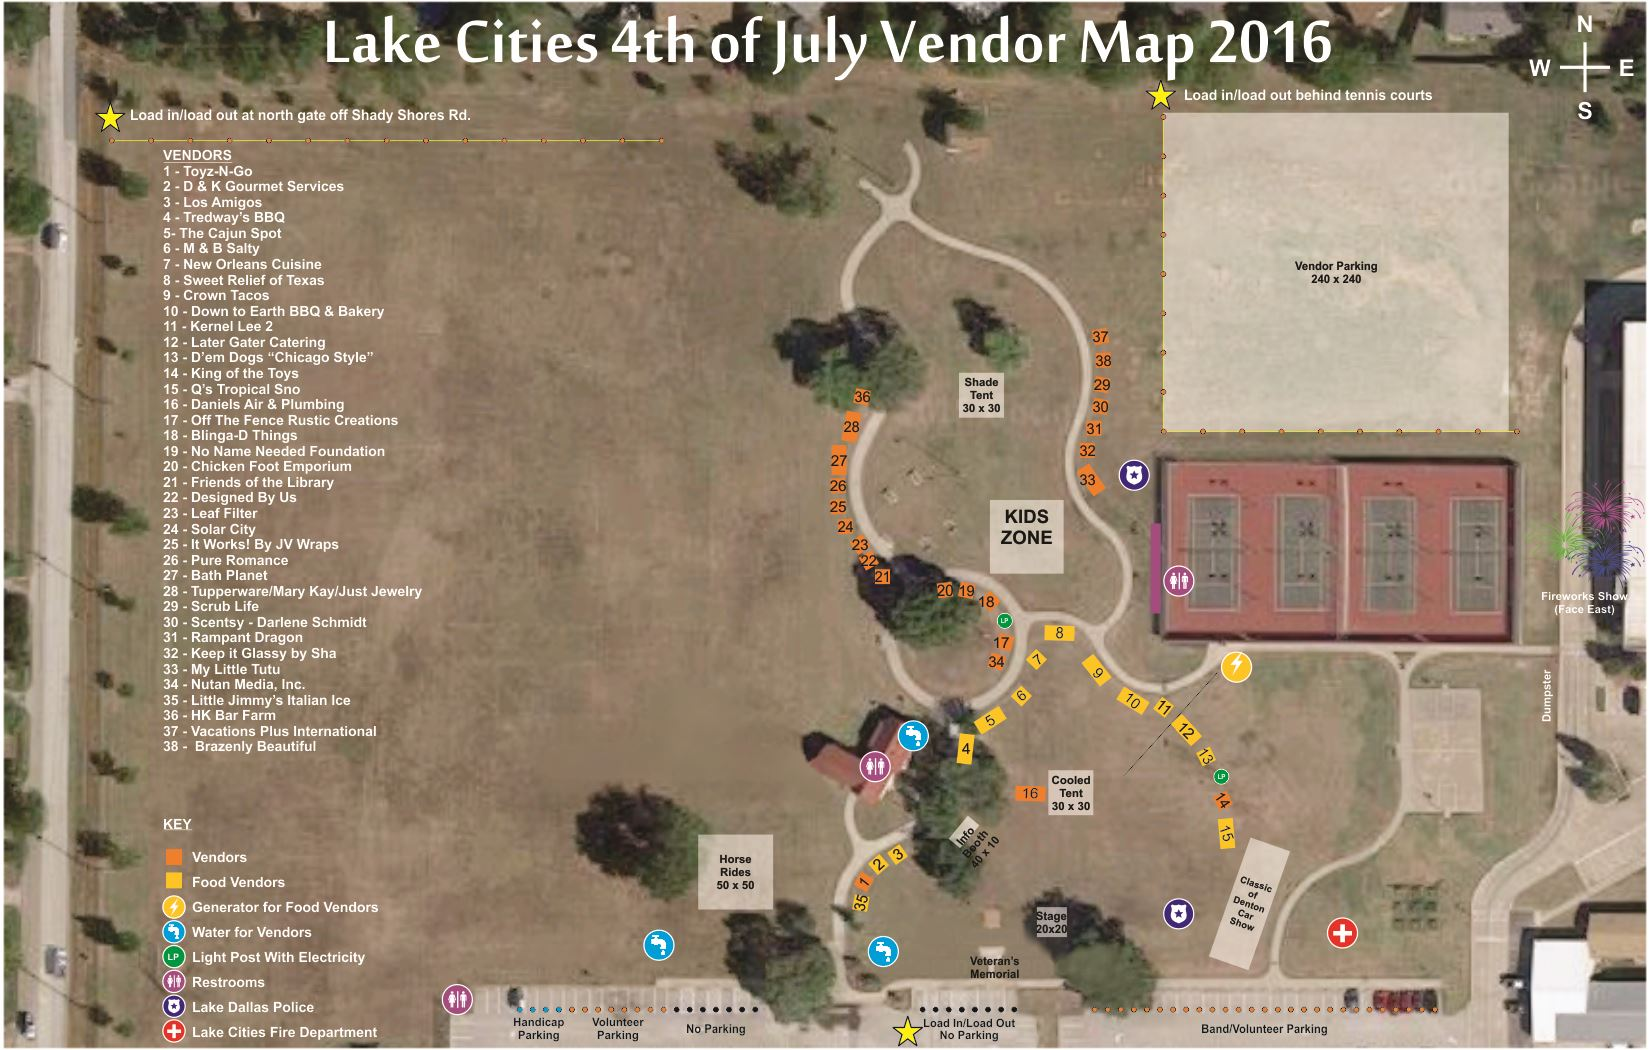 4th of July Vendor Map 2016